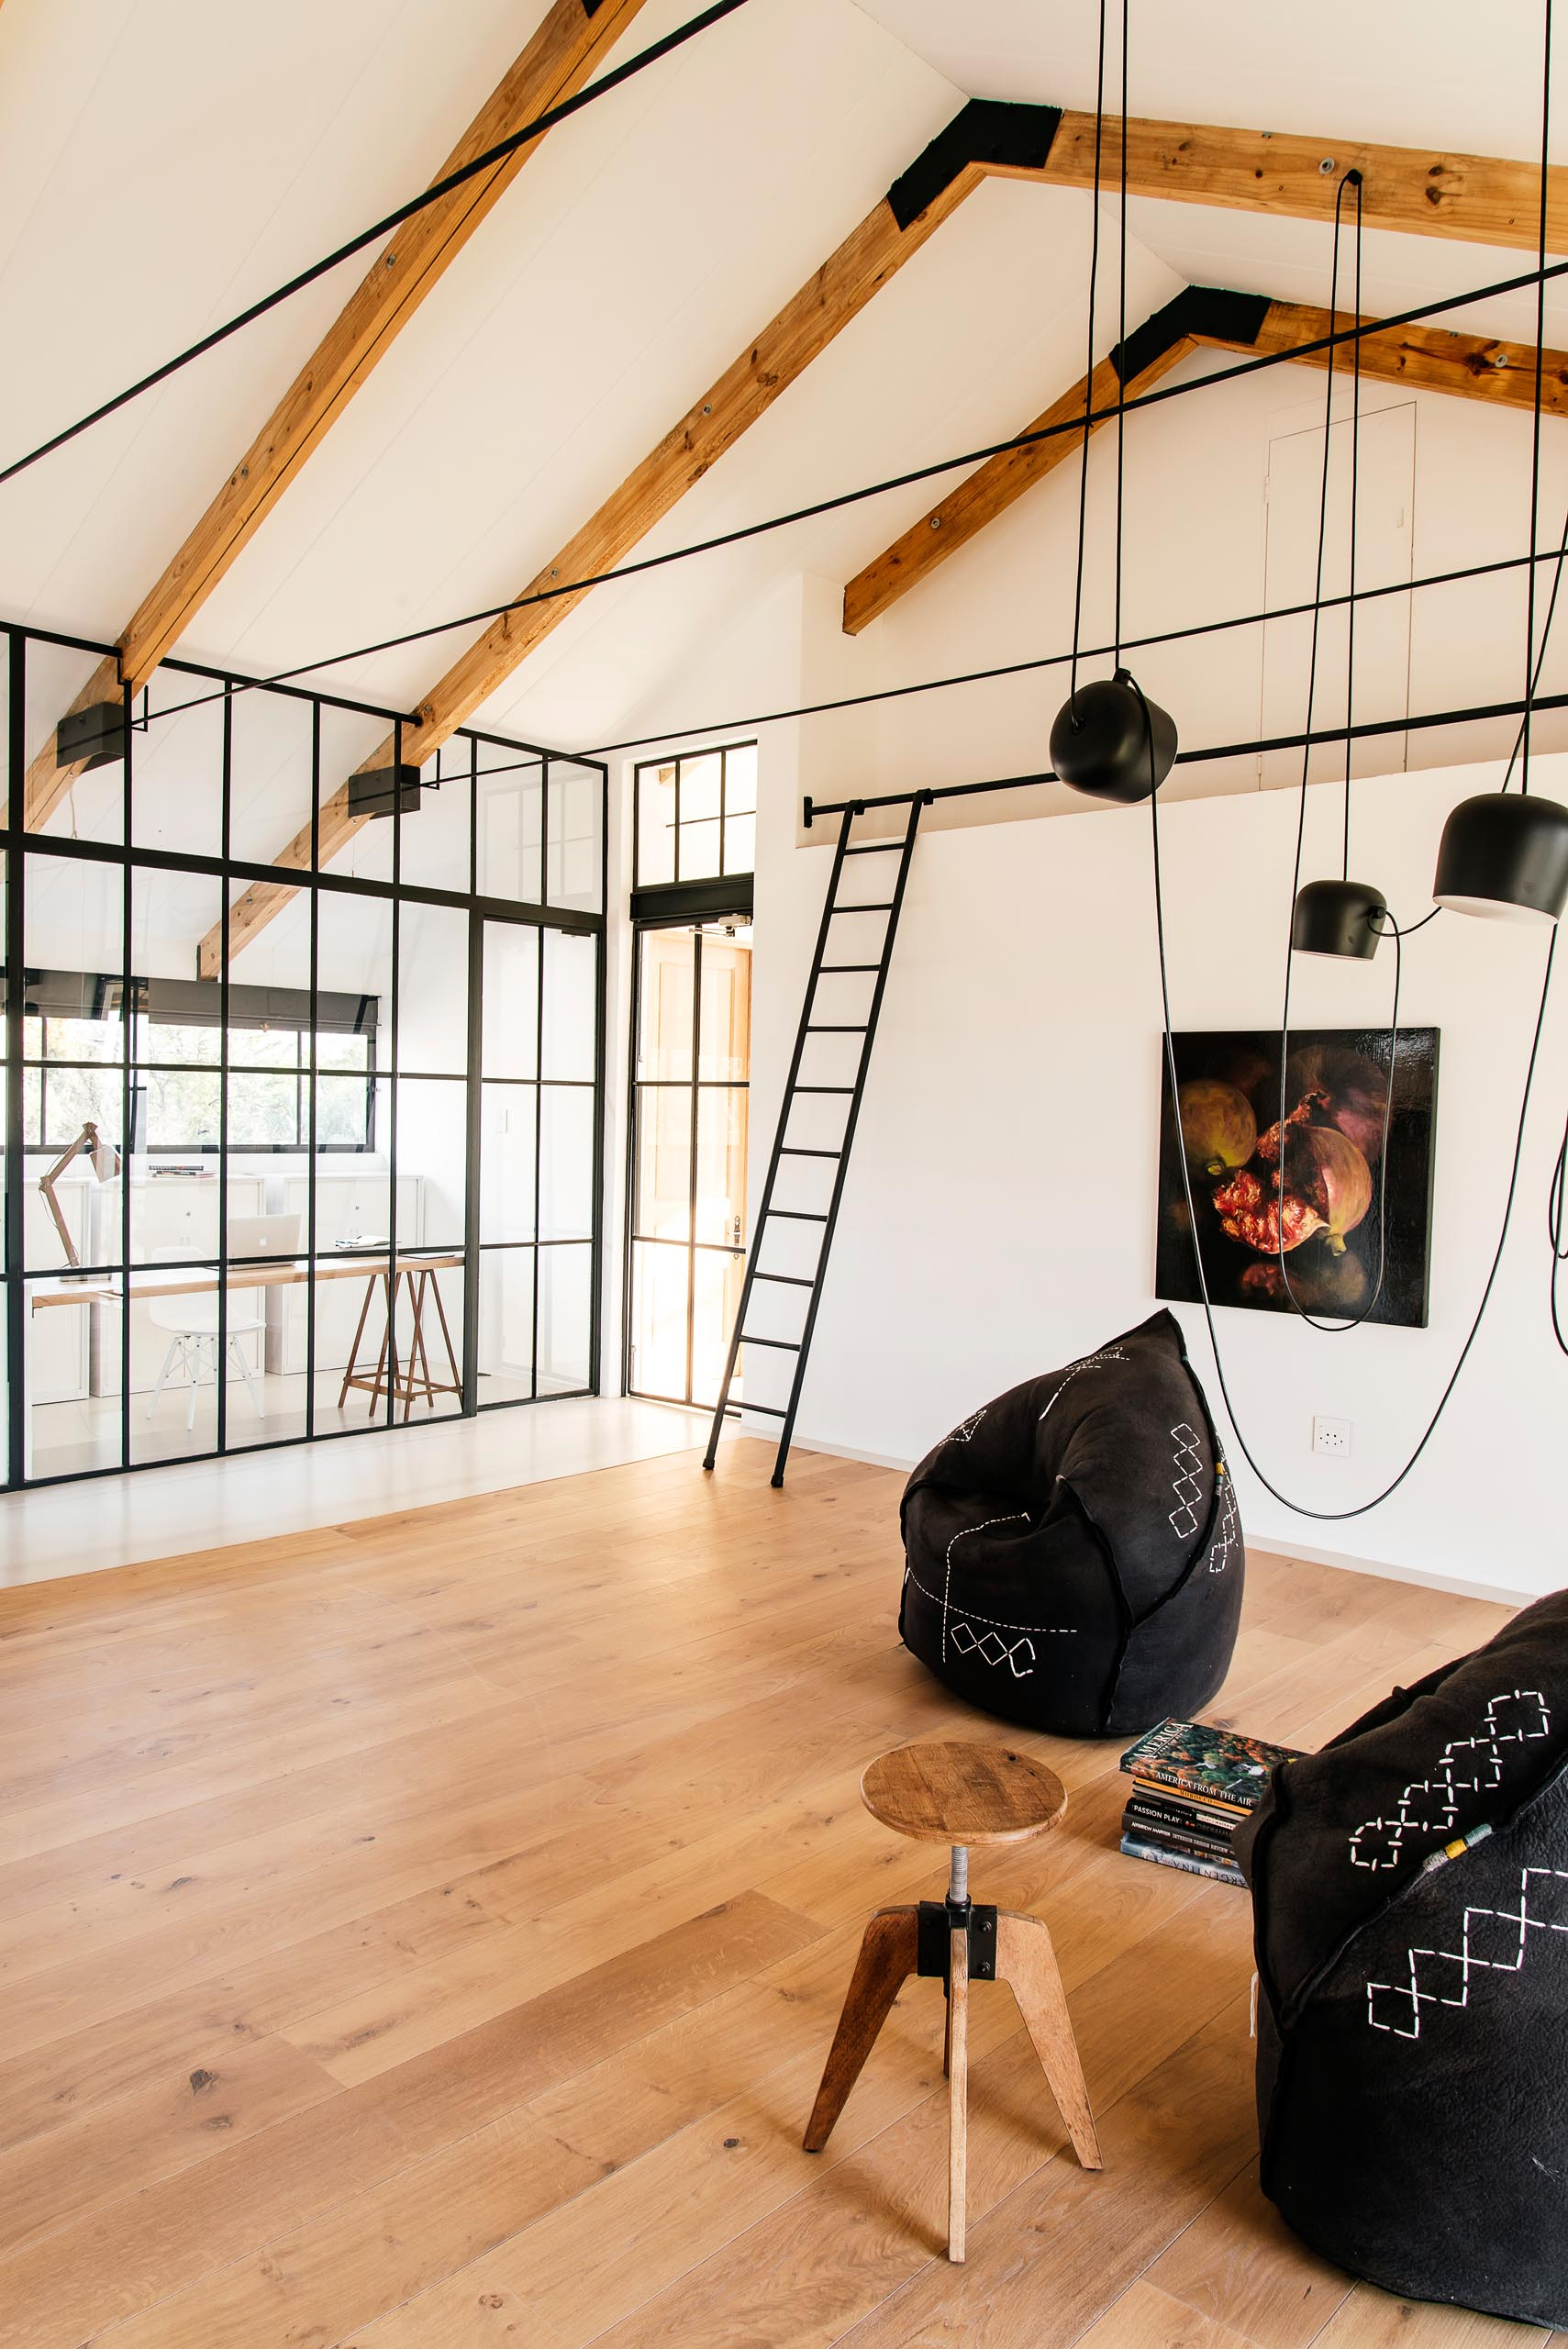 A modern home has a living space with exposed beams, wood flooring, and a pair of black felt chairs.